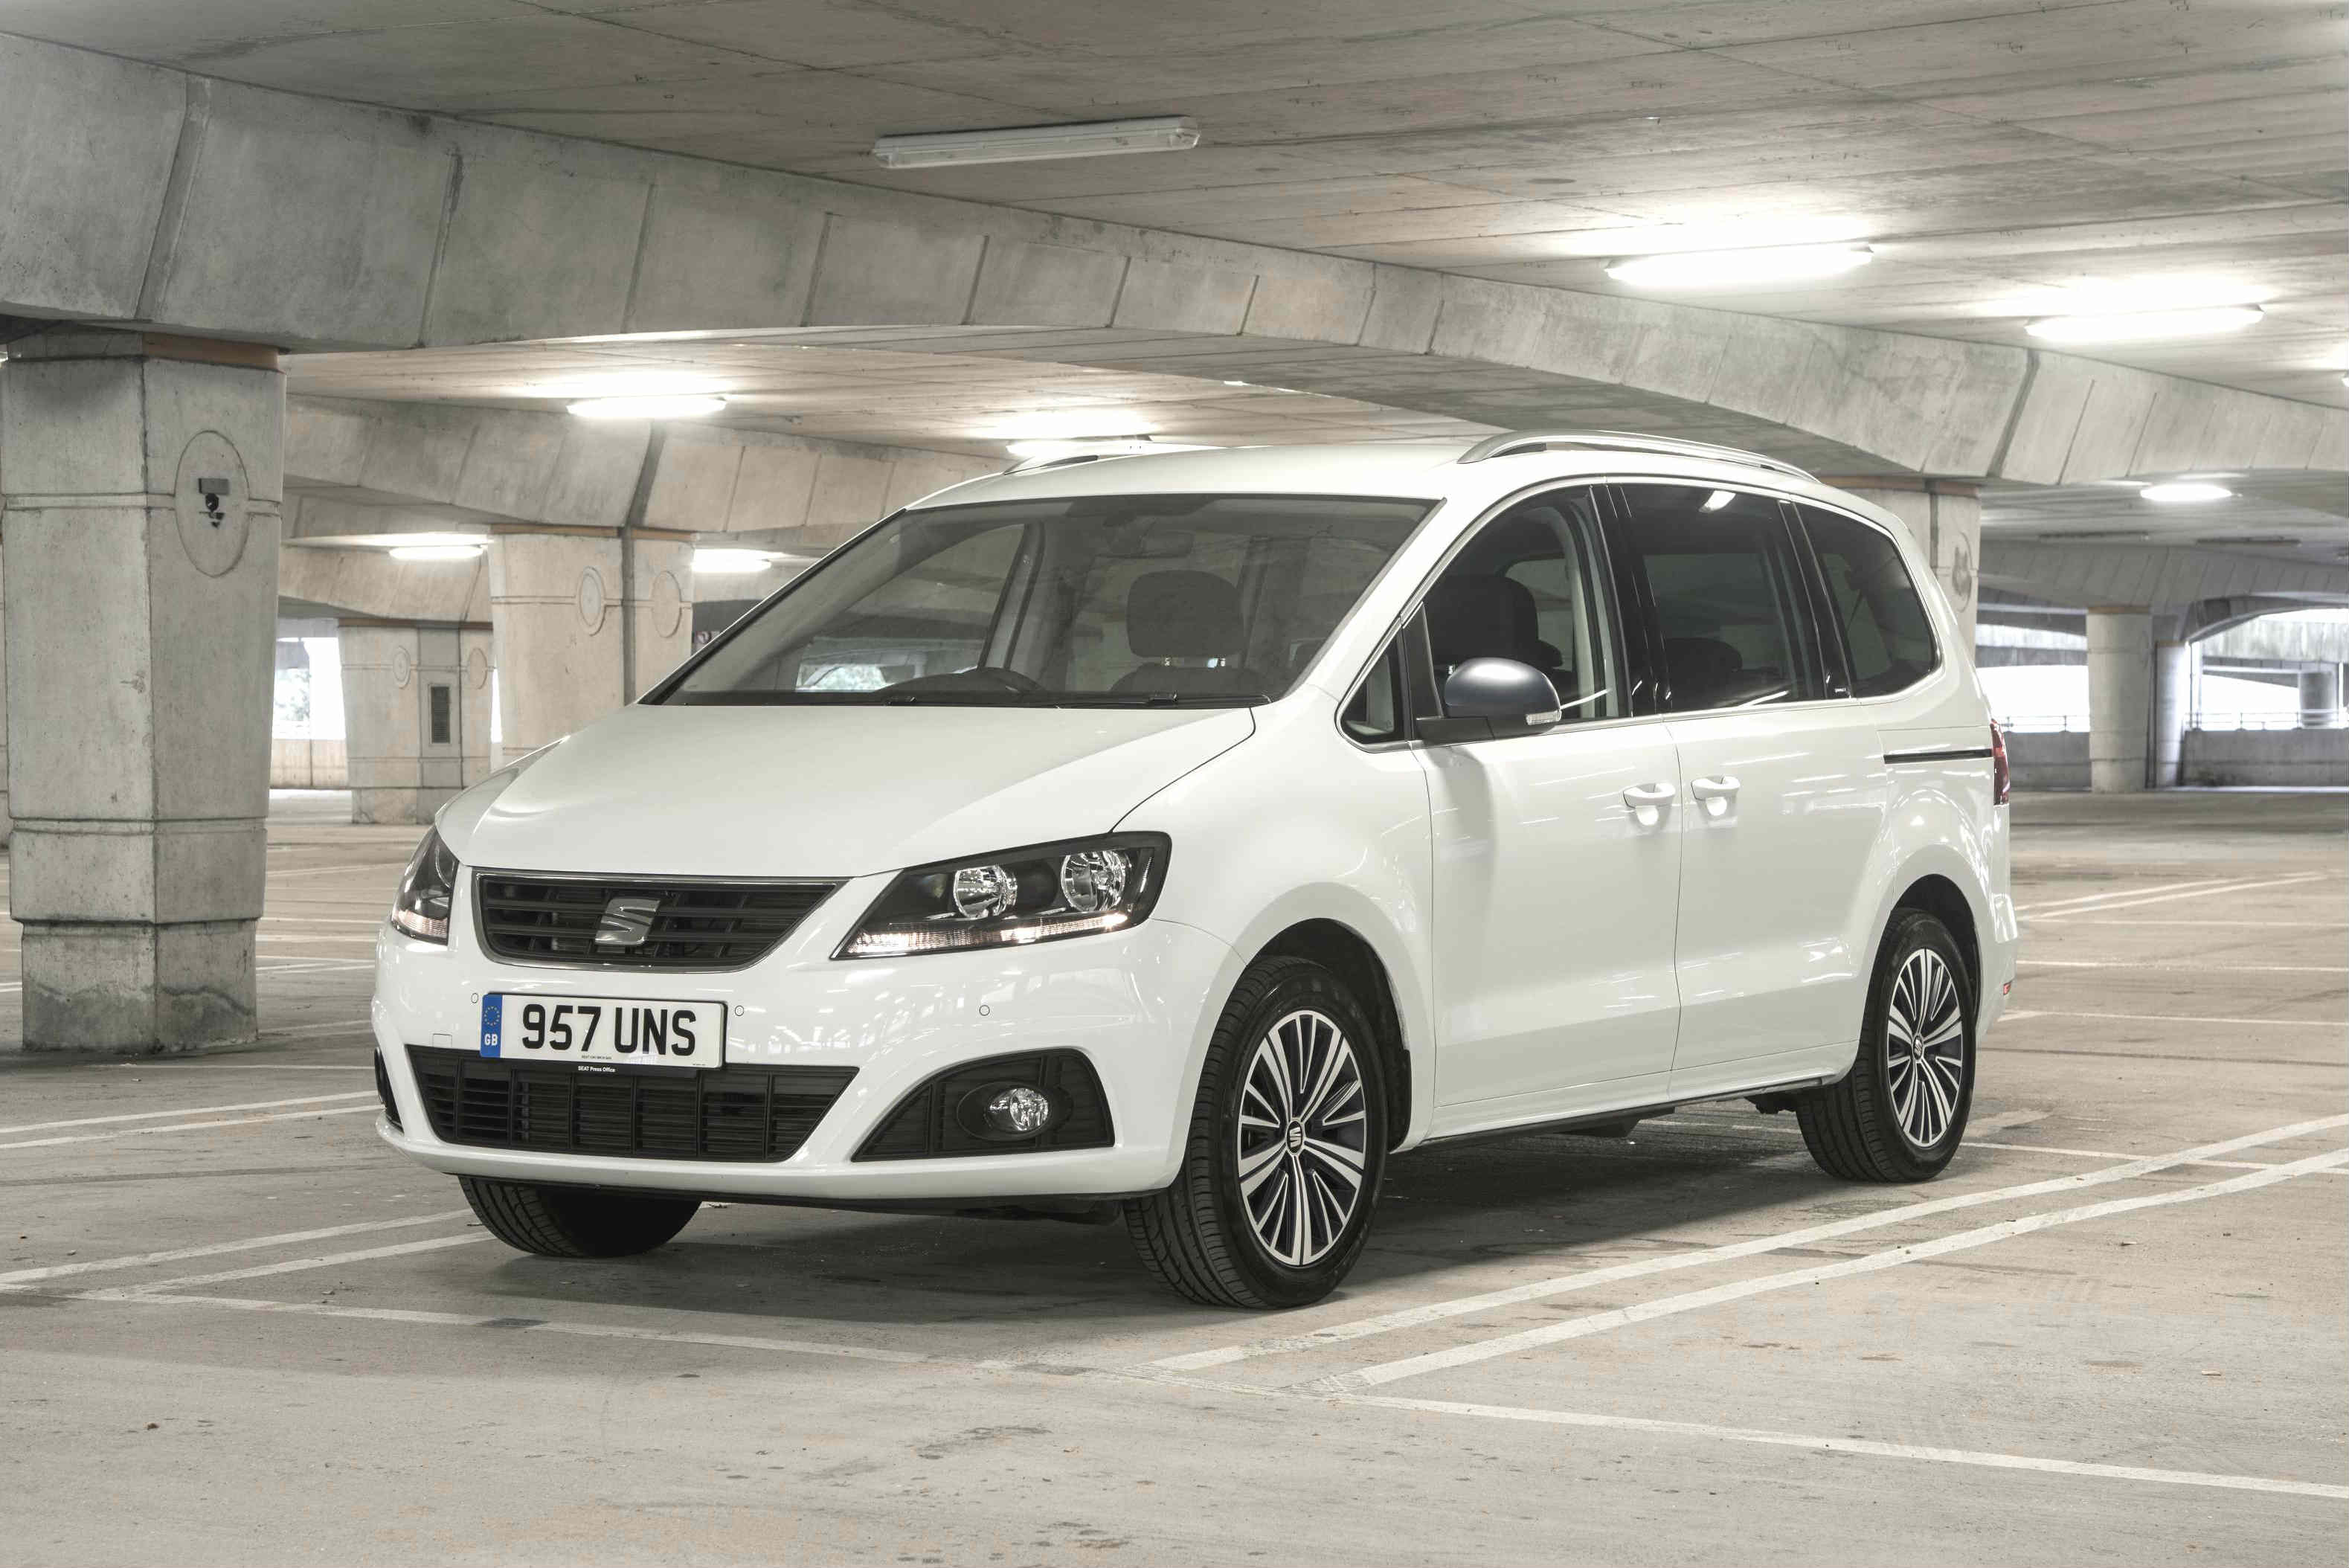 Seat Alhambra is the best large family car with sliding doors